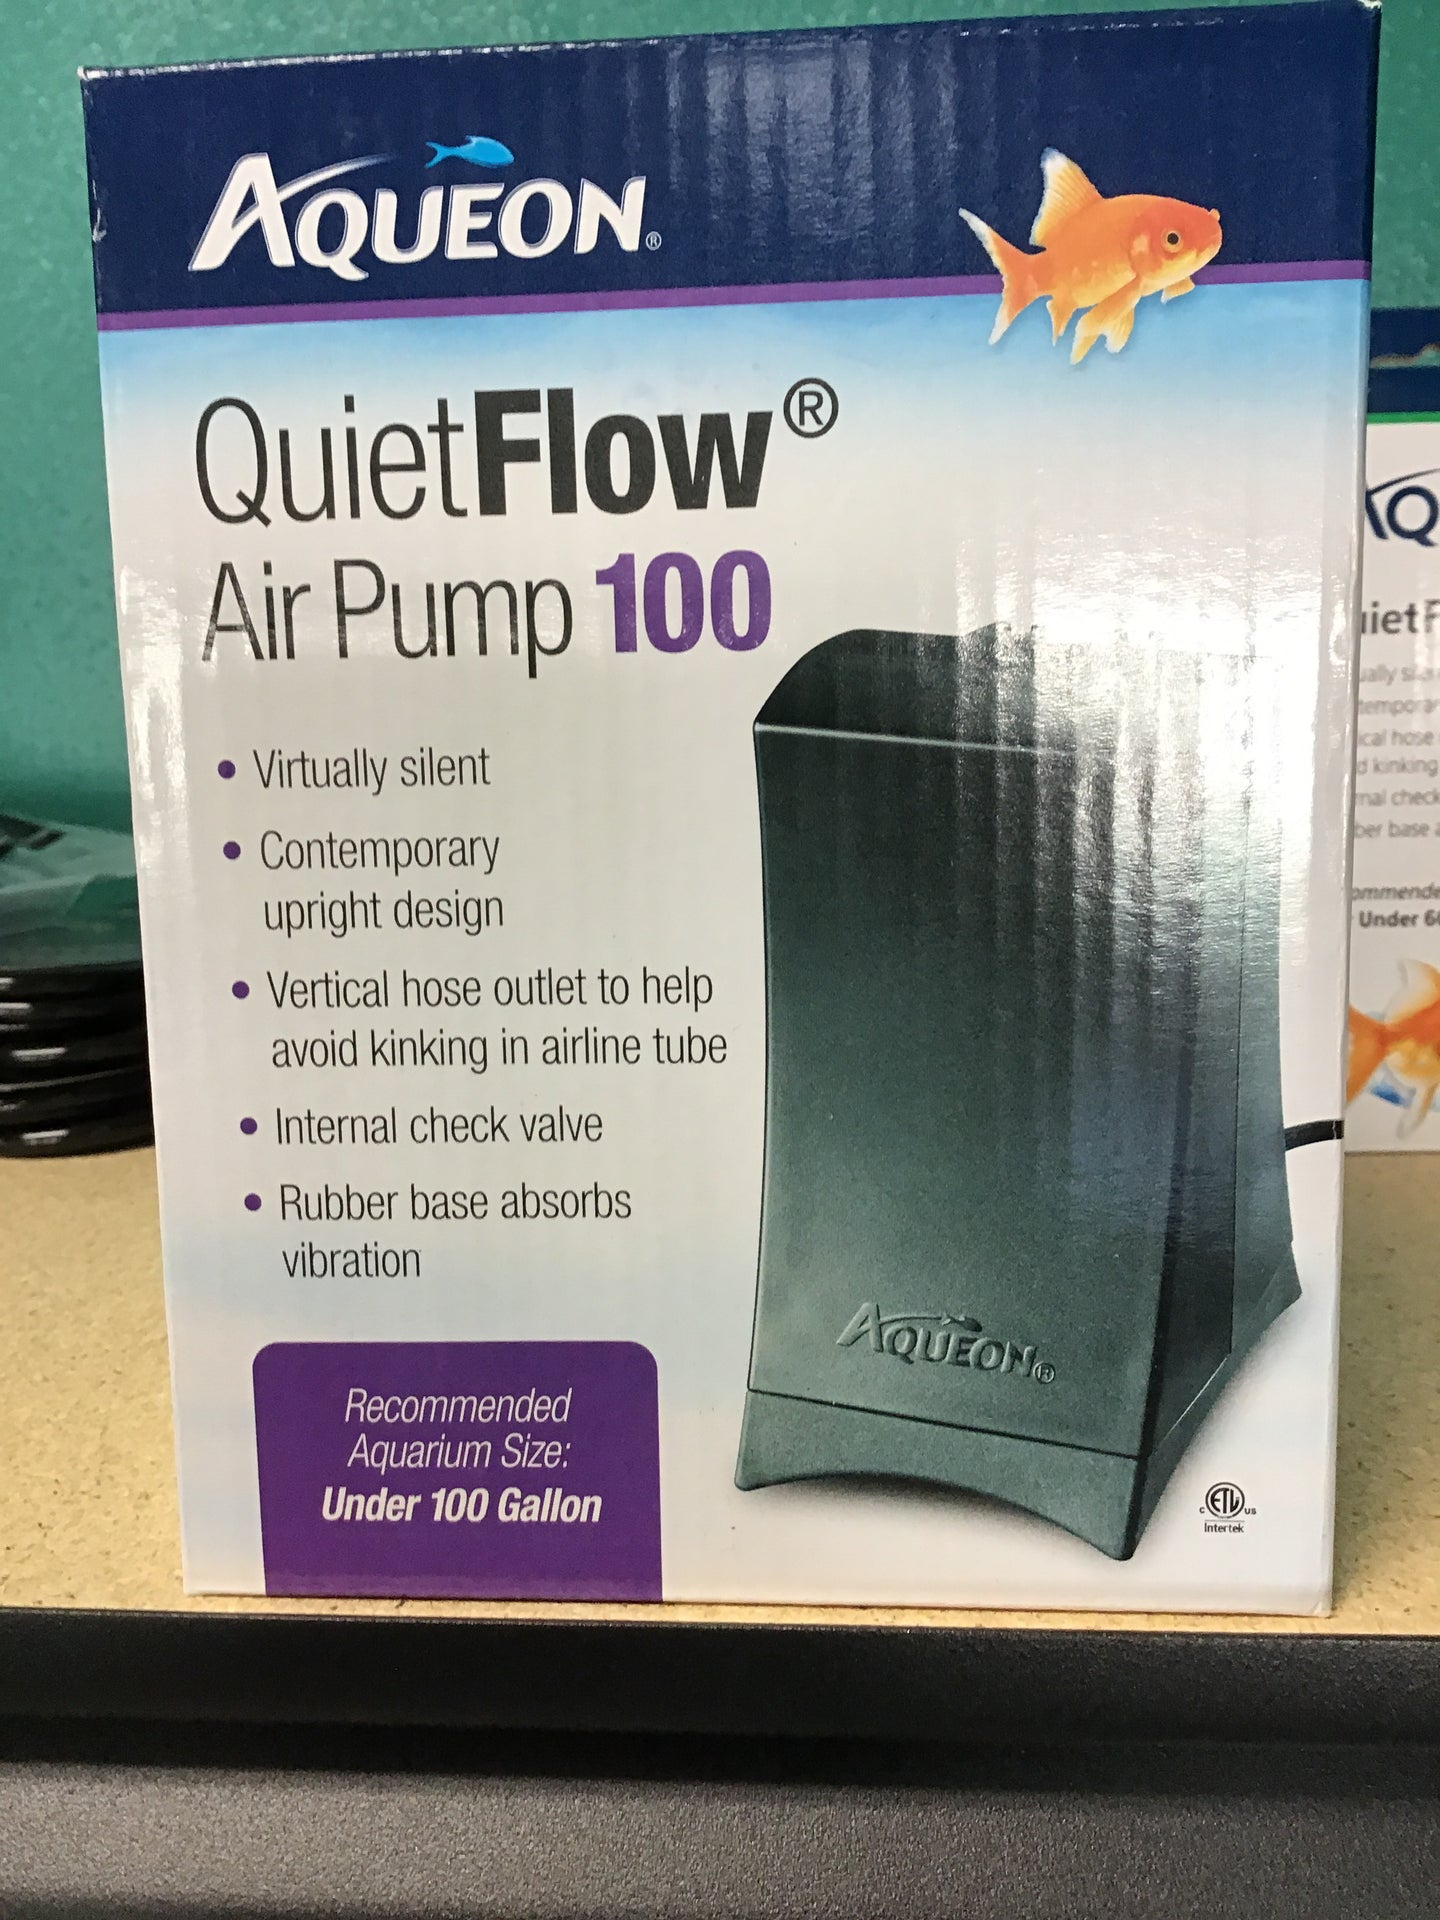 Aqueon Quiet flow air pump 100